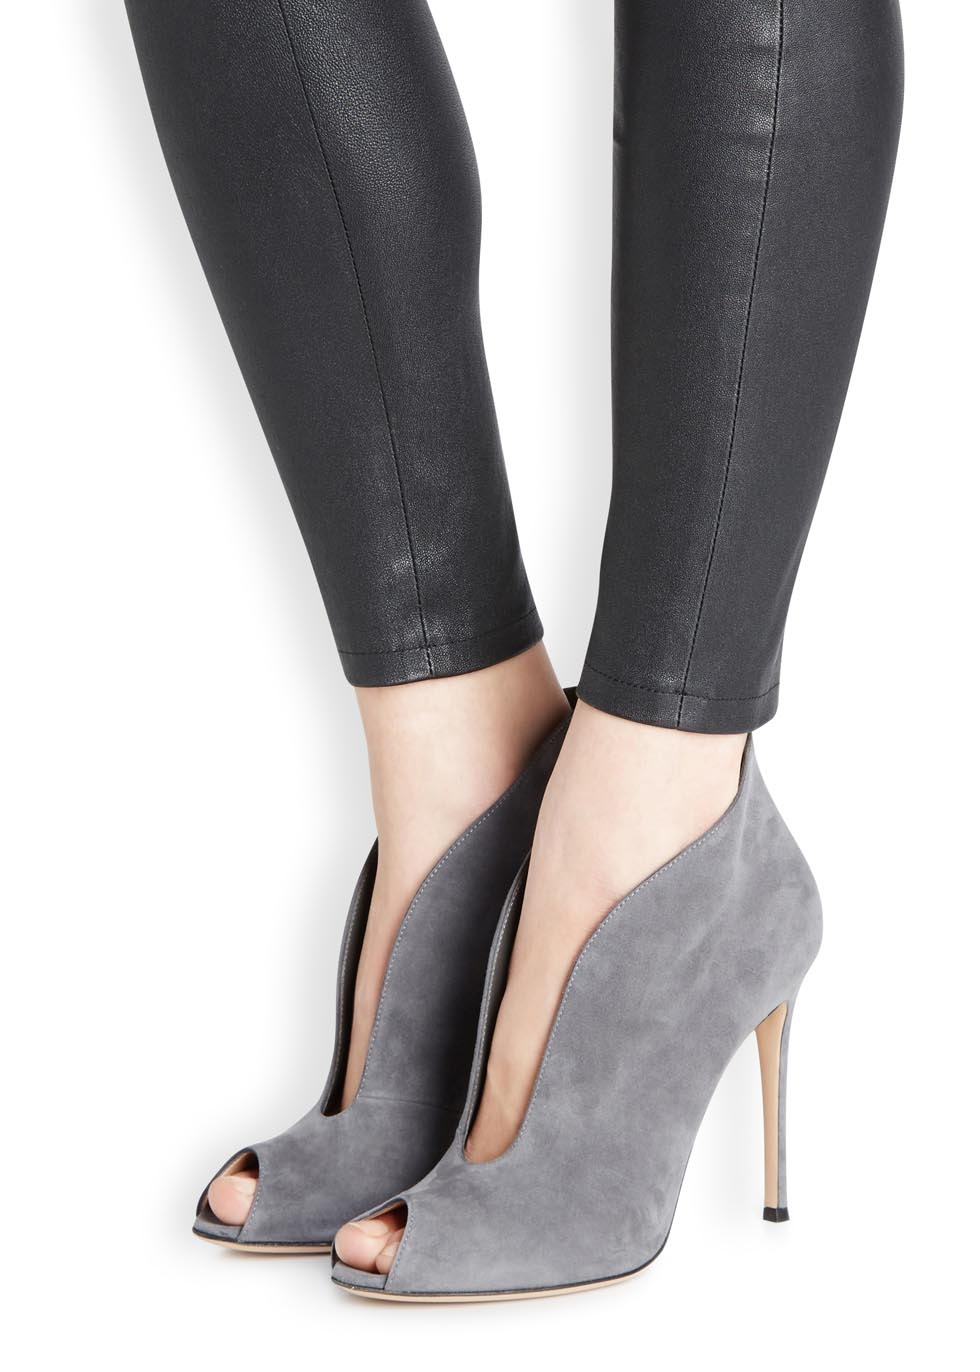 lyst gianvito rossi vamp grey suede ankle boots in gray. Black Bedroom Furniture Sets. Home Design Ideas